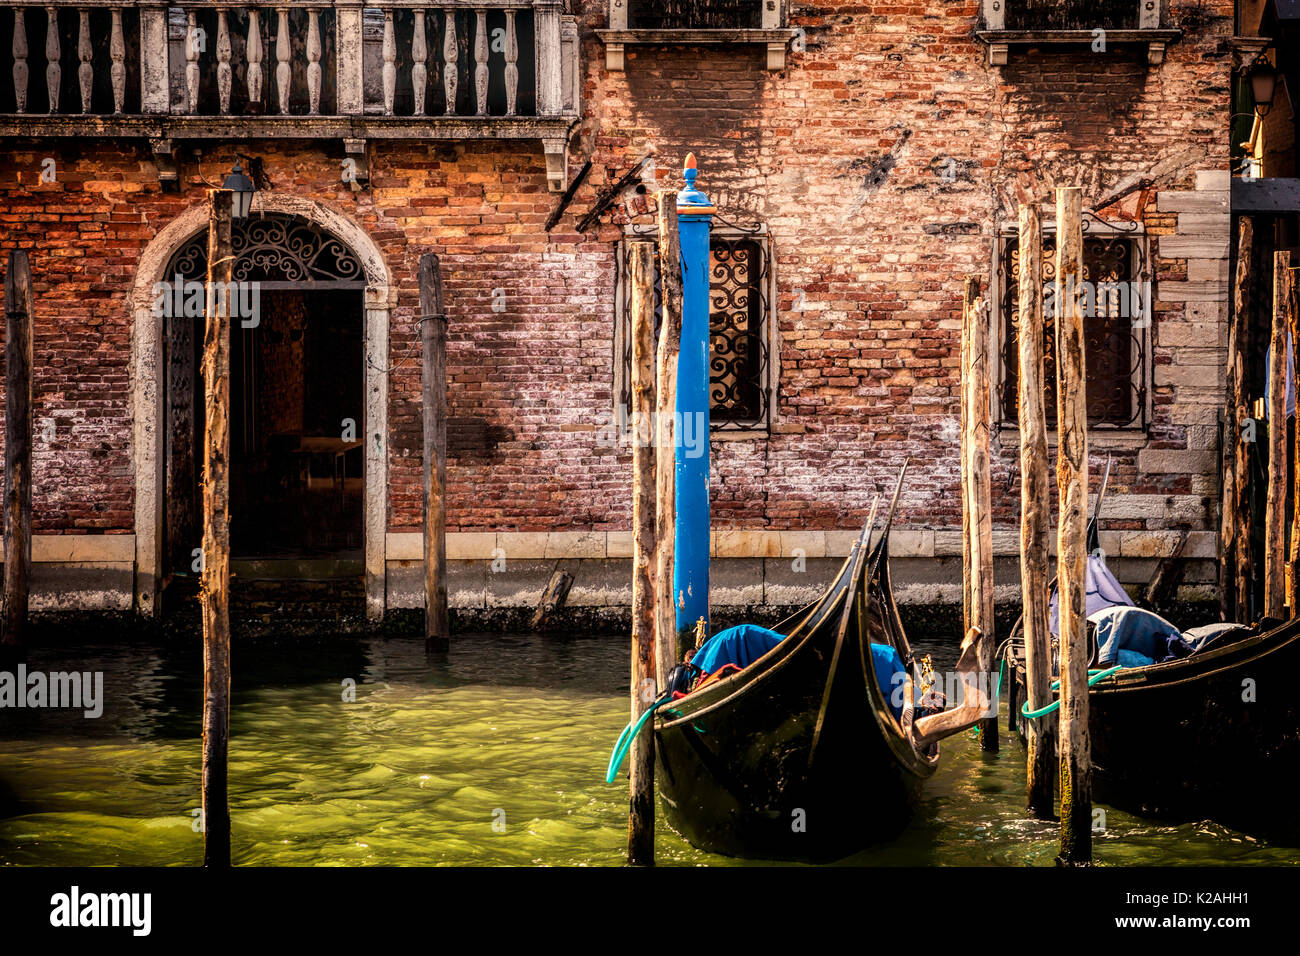 Weathered building facade in Venice, Italy - Stock Image